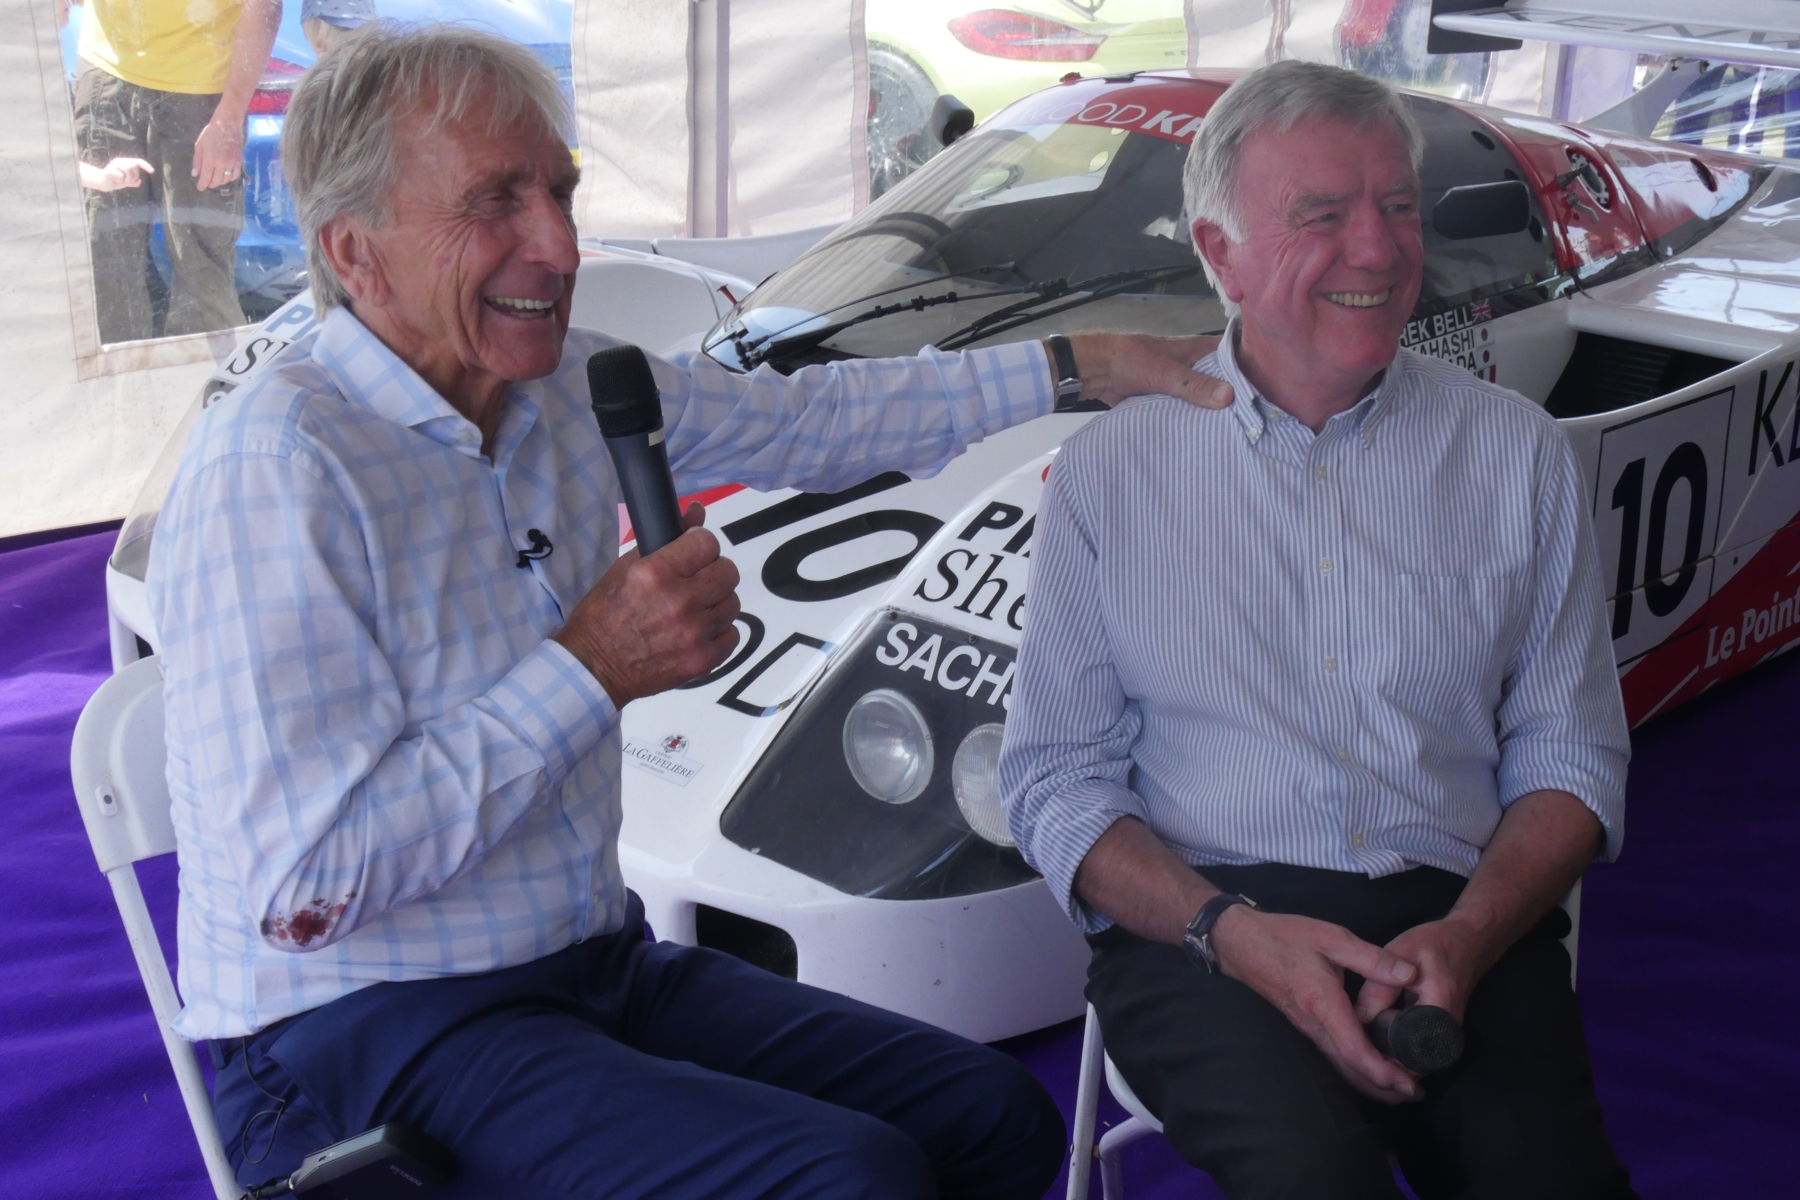 Derek Bell being interviewed by Mike Wilds